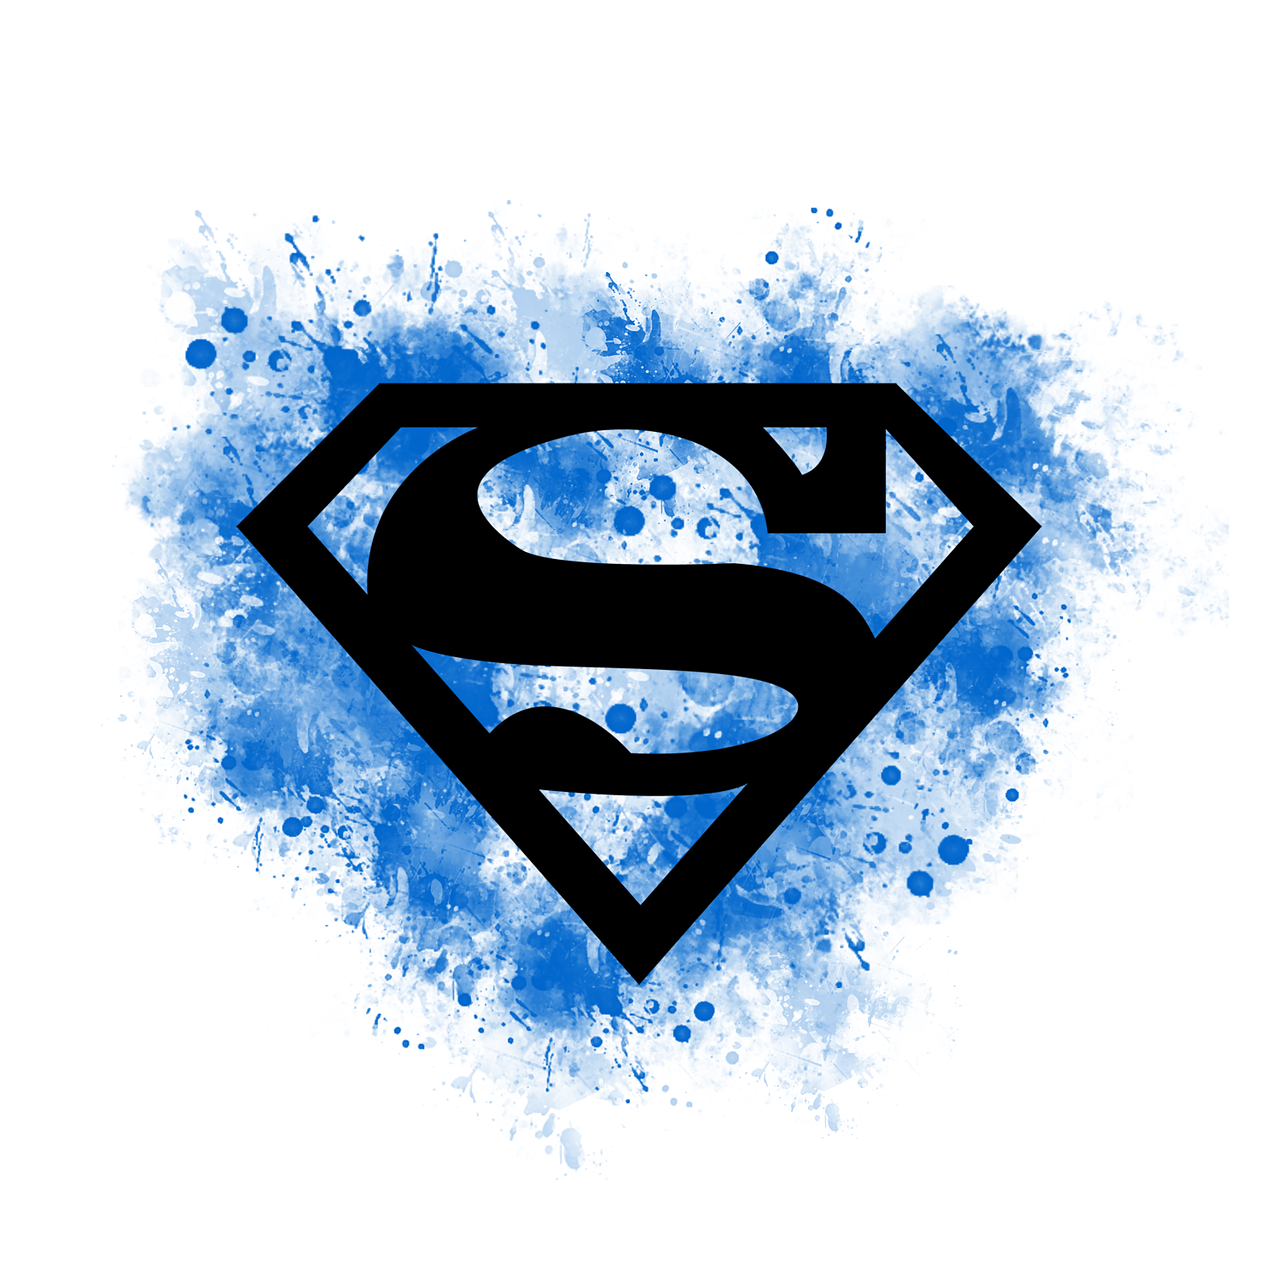 superman,supergirl,su,superhero,s,logo,superwoman,super,